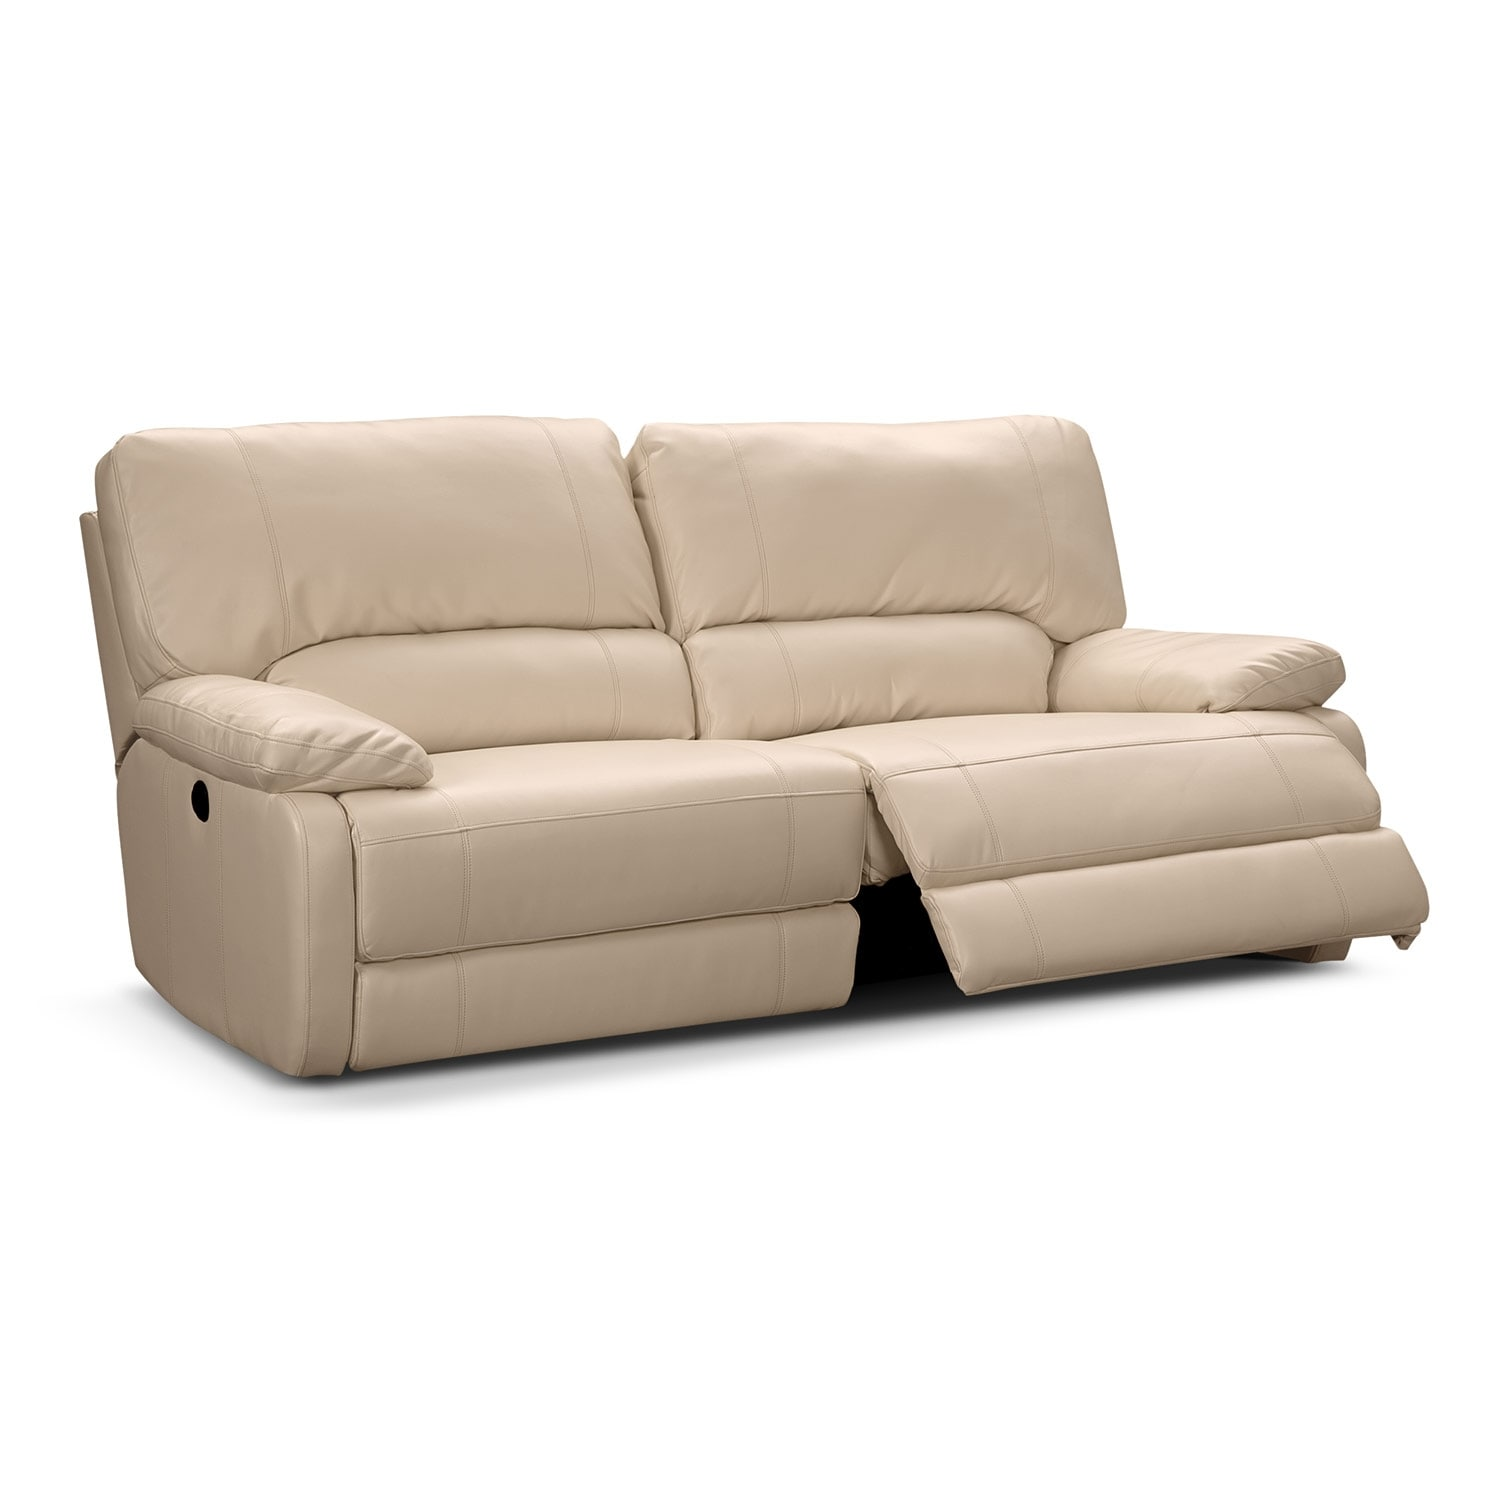 Coronado leather power reclining sofa value city furniture Reclining leather sofa and loveseat